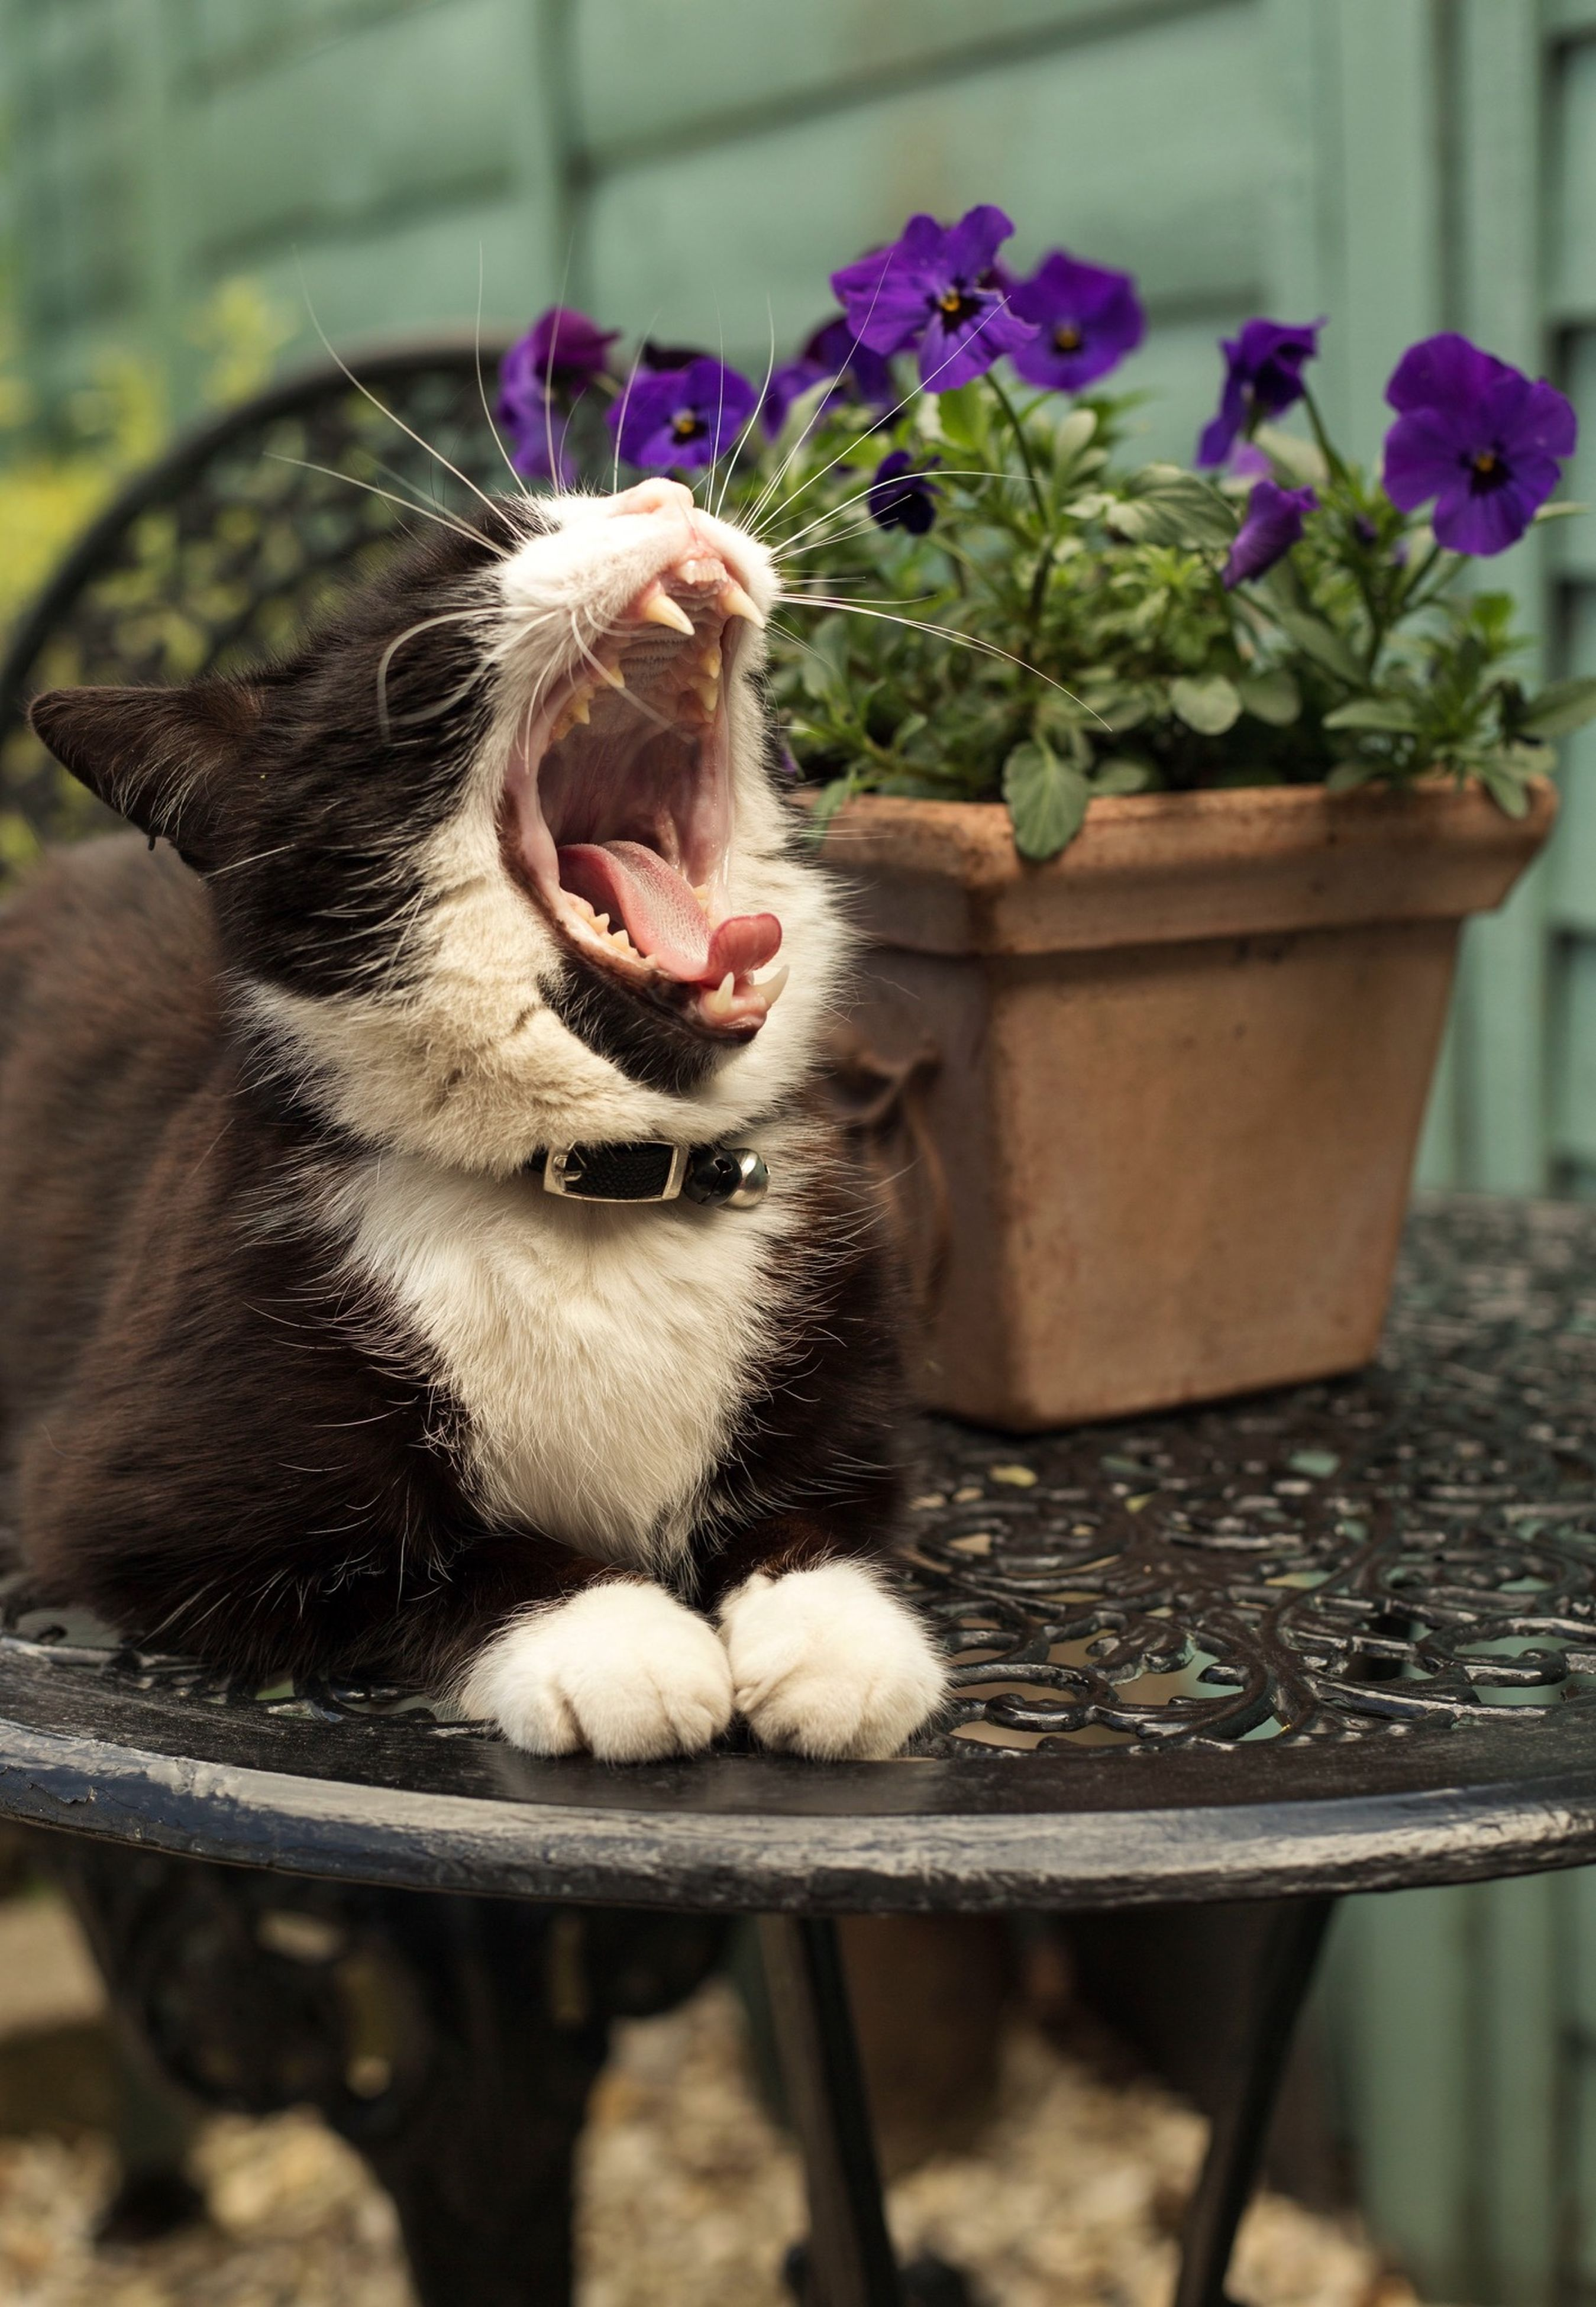 animal themes, one animal, domestic animals, domestic cat, pets, mammal, cat, feline, flower, whisker, plant, focus on foreground, portrait, looking at camera, potted plant, close-up, sitting, nature, relaxation